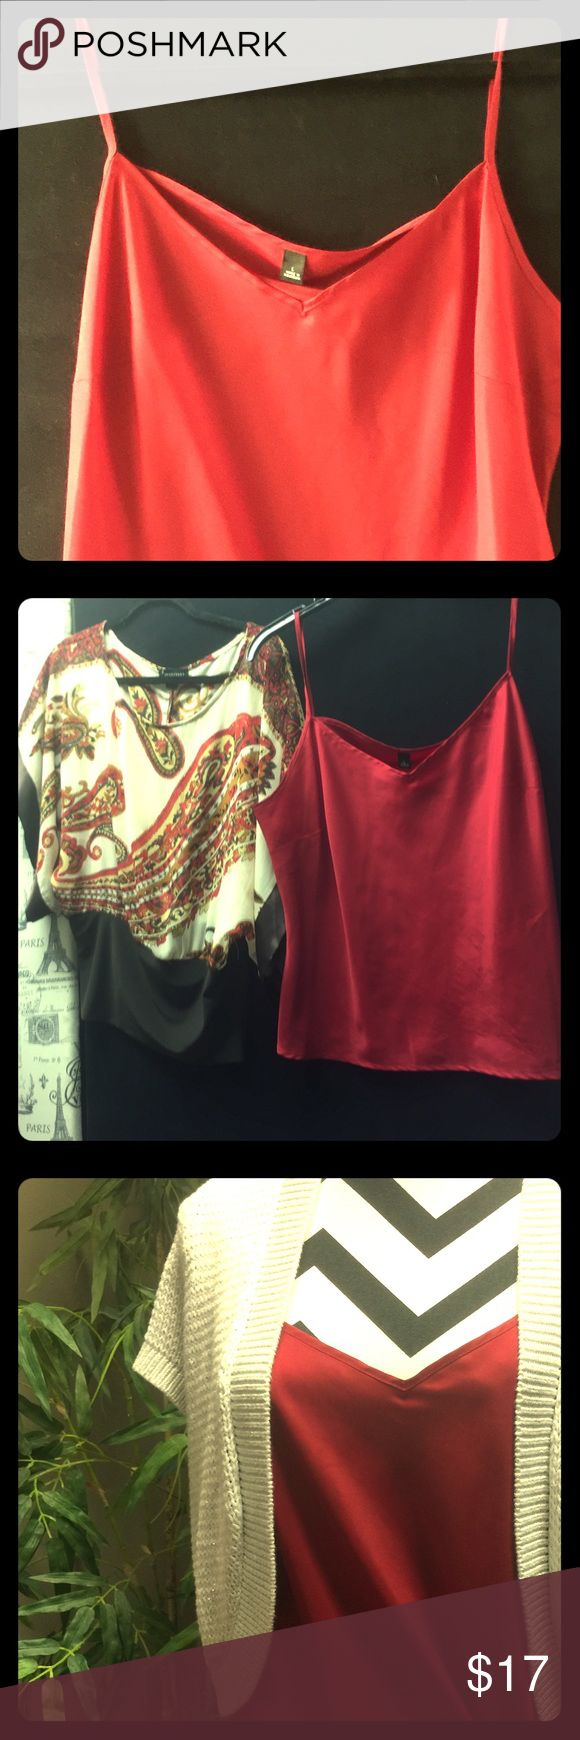 RED CAMI FOR UNDER SHEER ITEMS OR TEES LARGE SIZE LOOKS GREAT MUST HAVE STAPLE FITS MEDIUM-LARGE Tops Camisoles